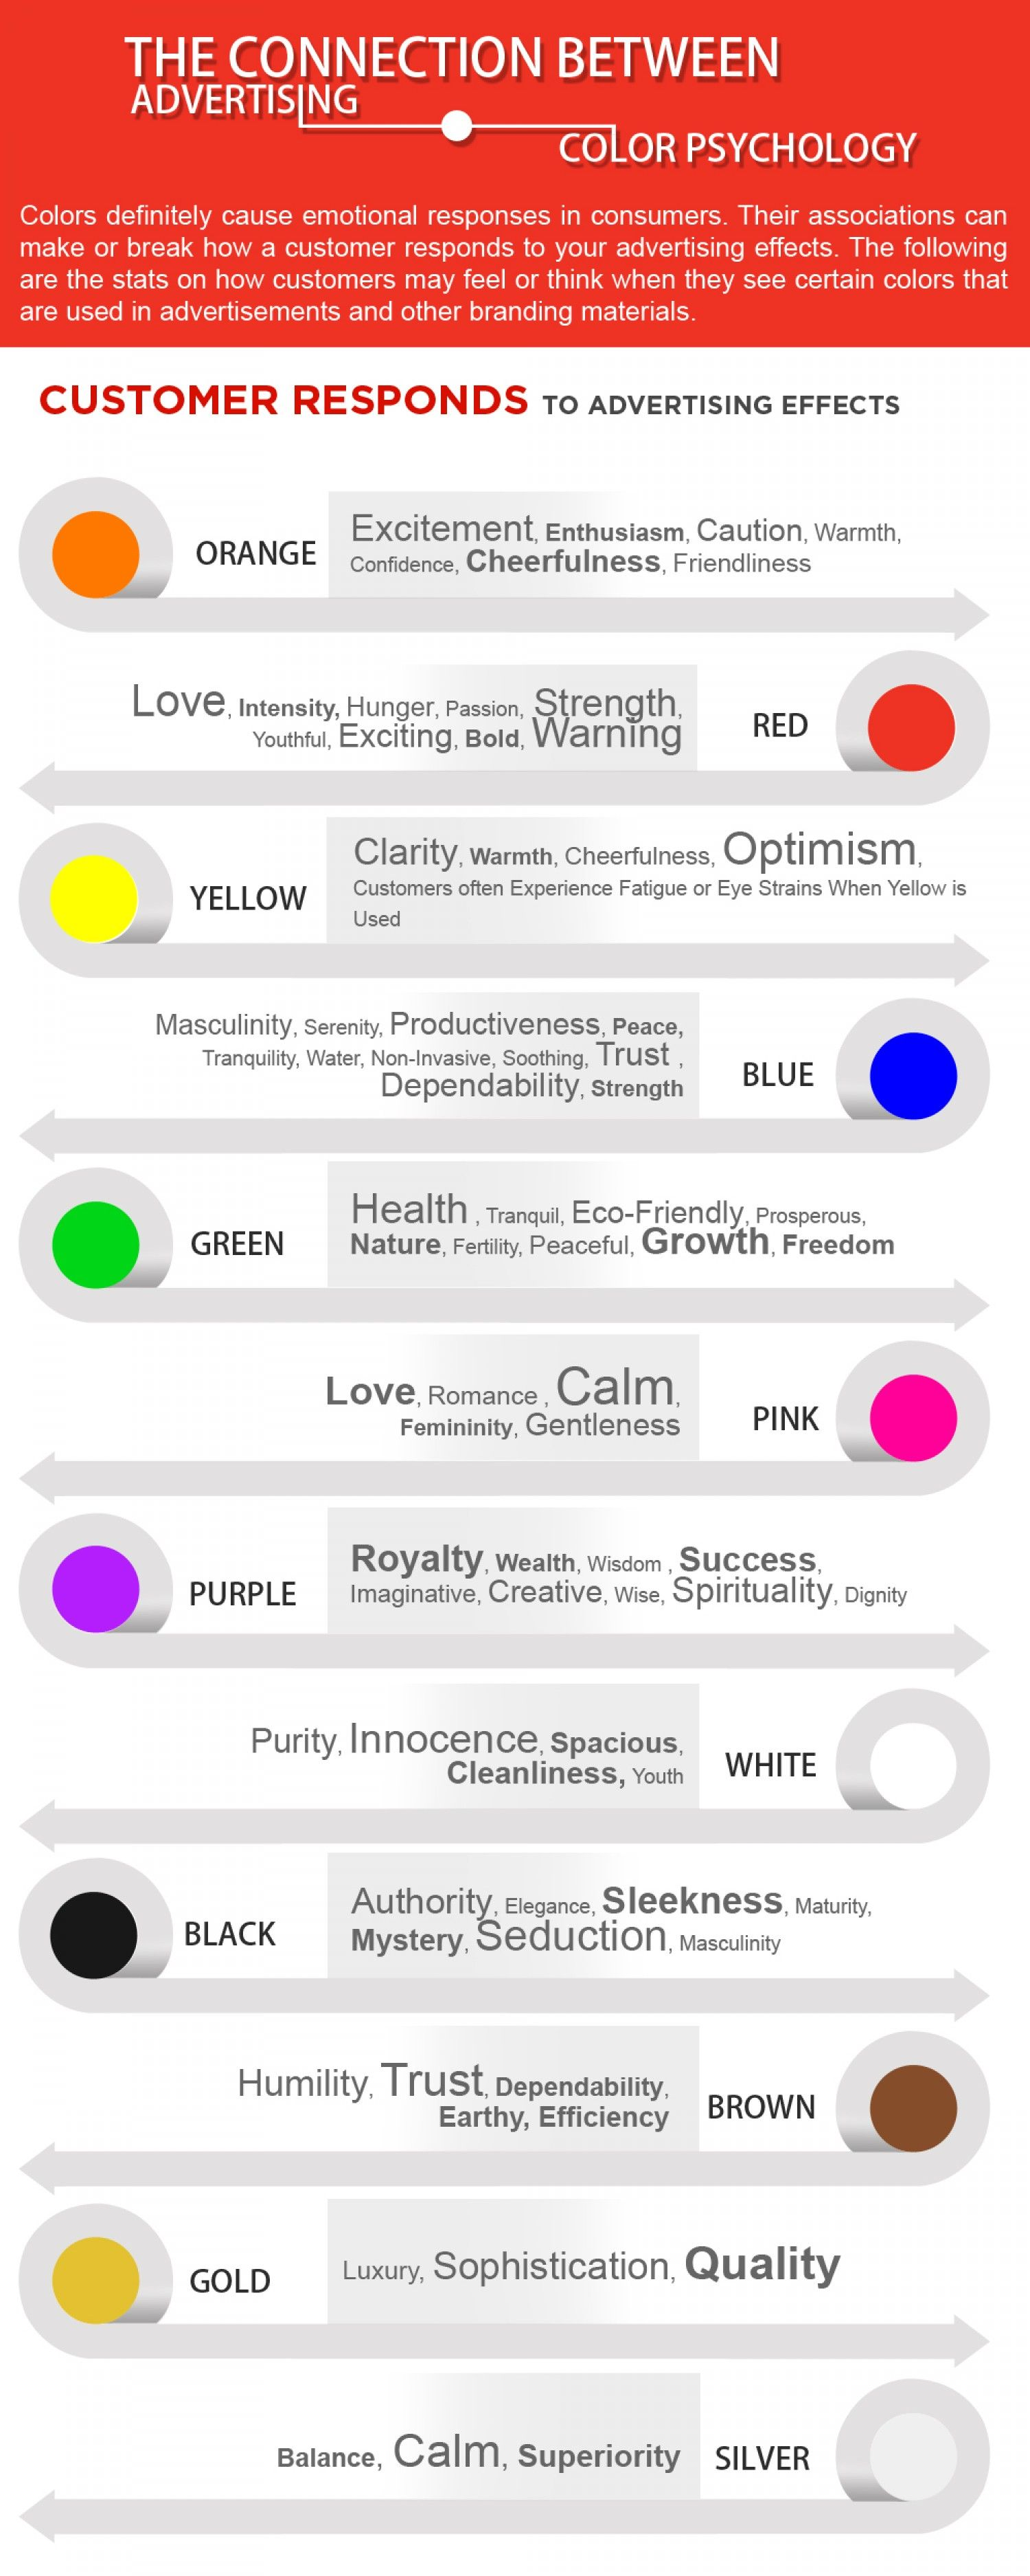 The Connection between Advertising and Color Psychology